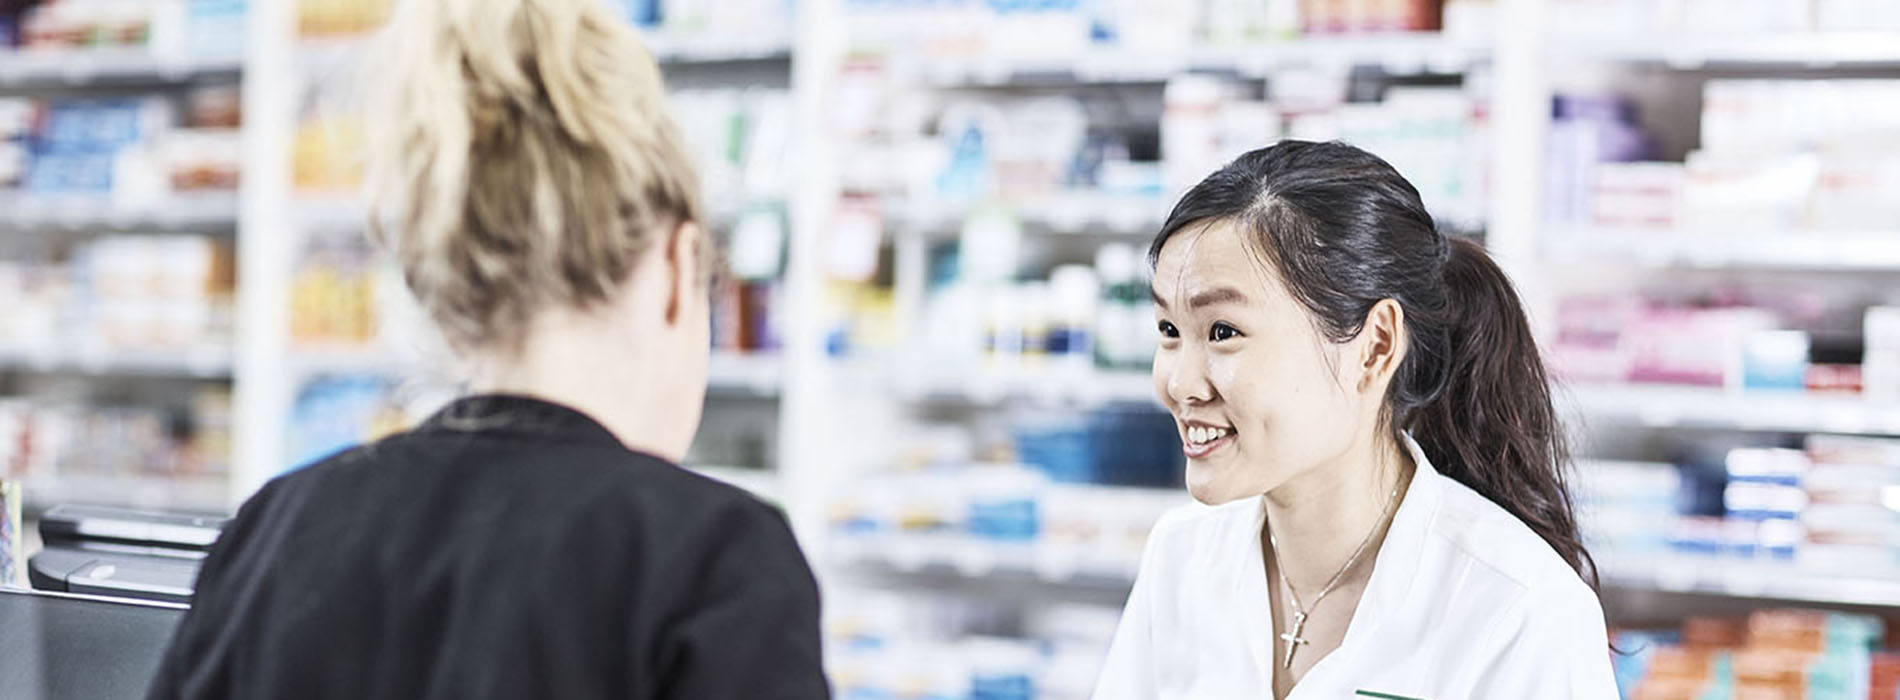 Smiling Pharmacist speaking with a customer at the shop counter